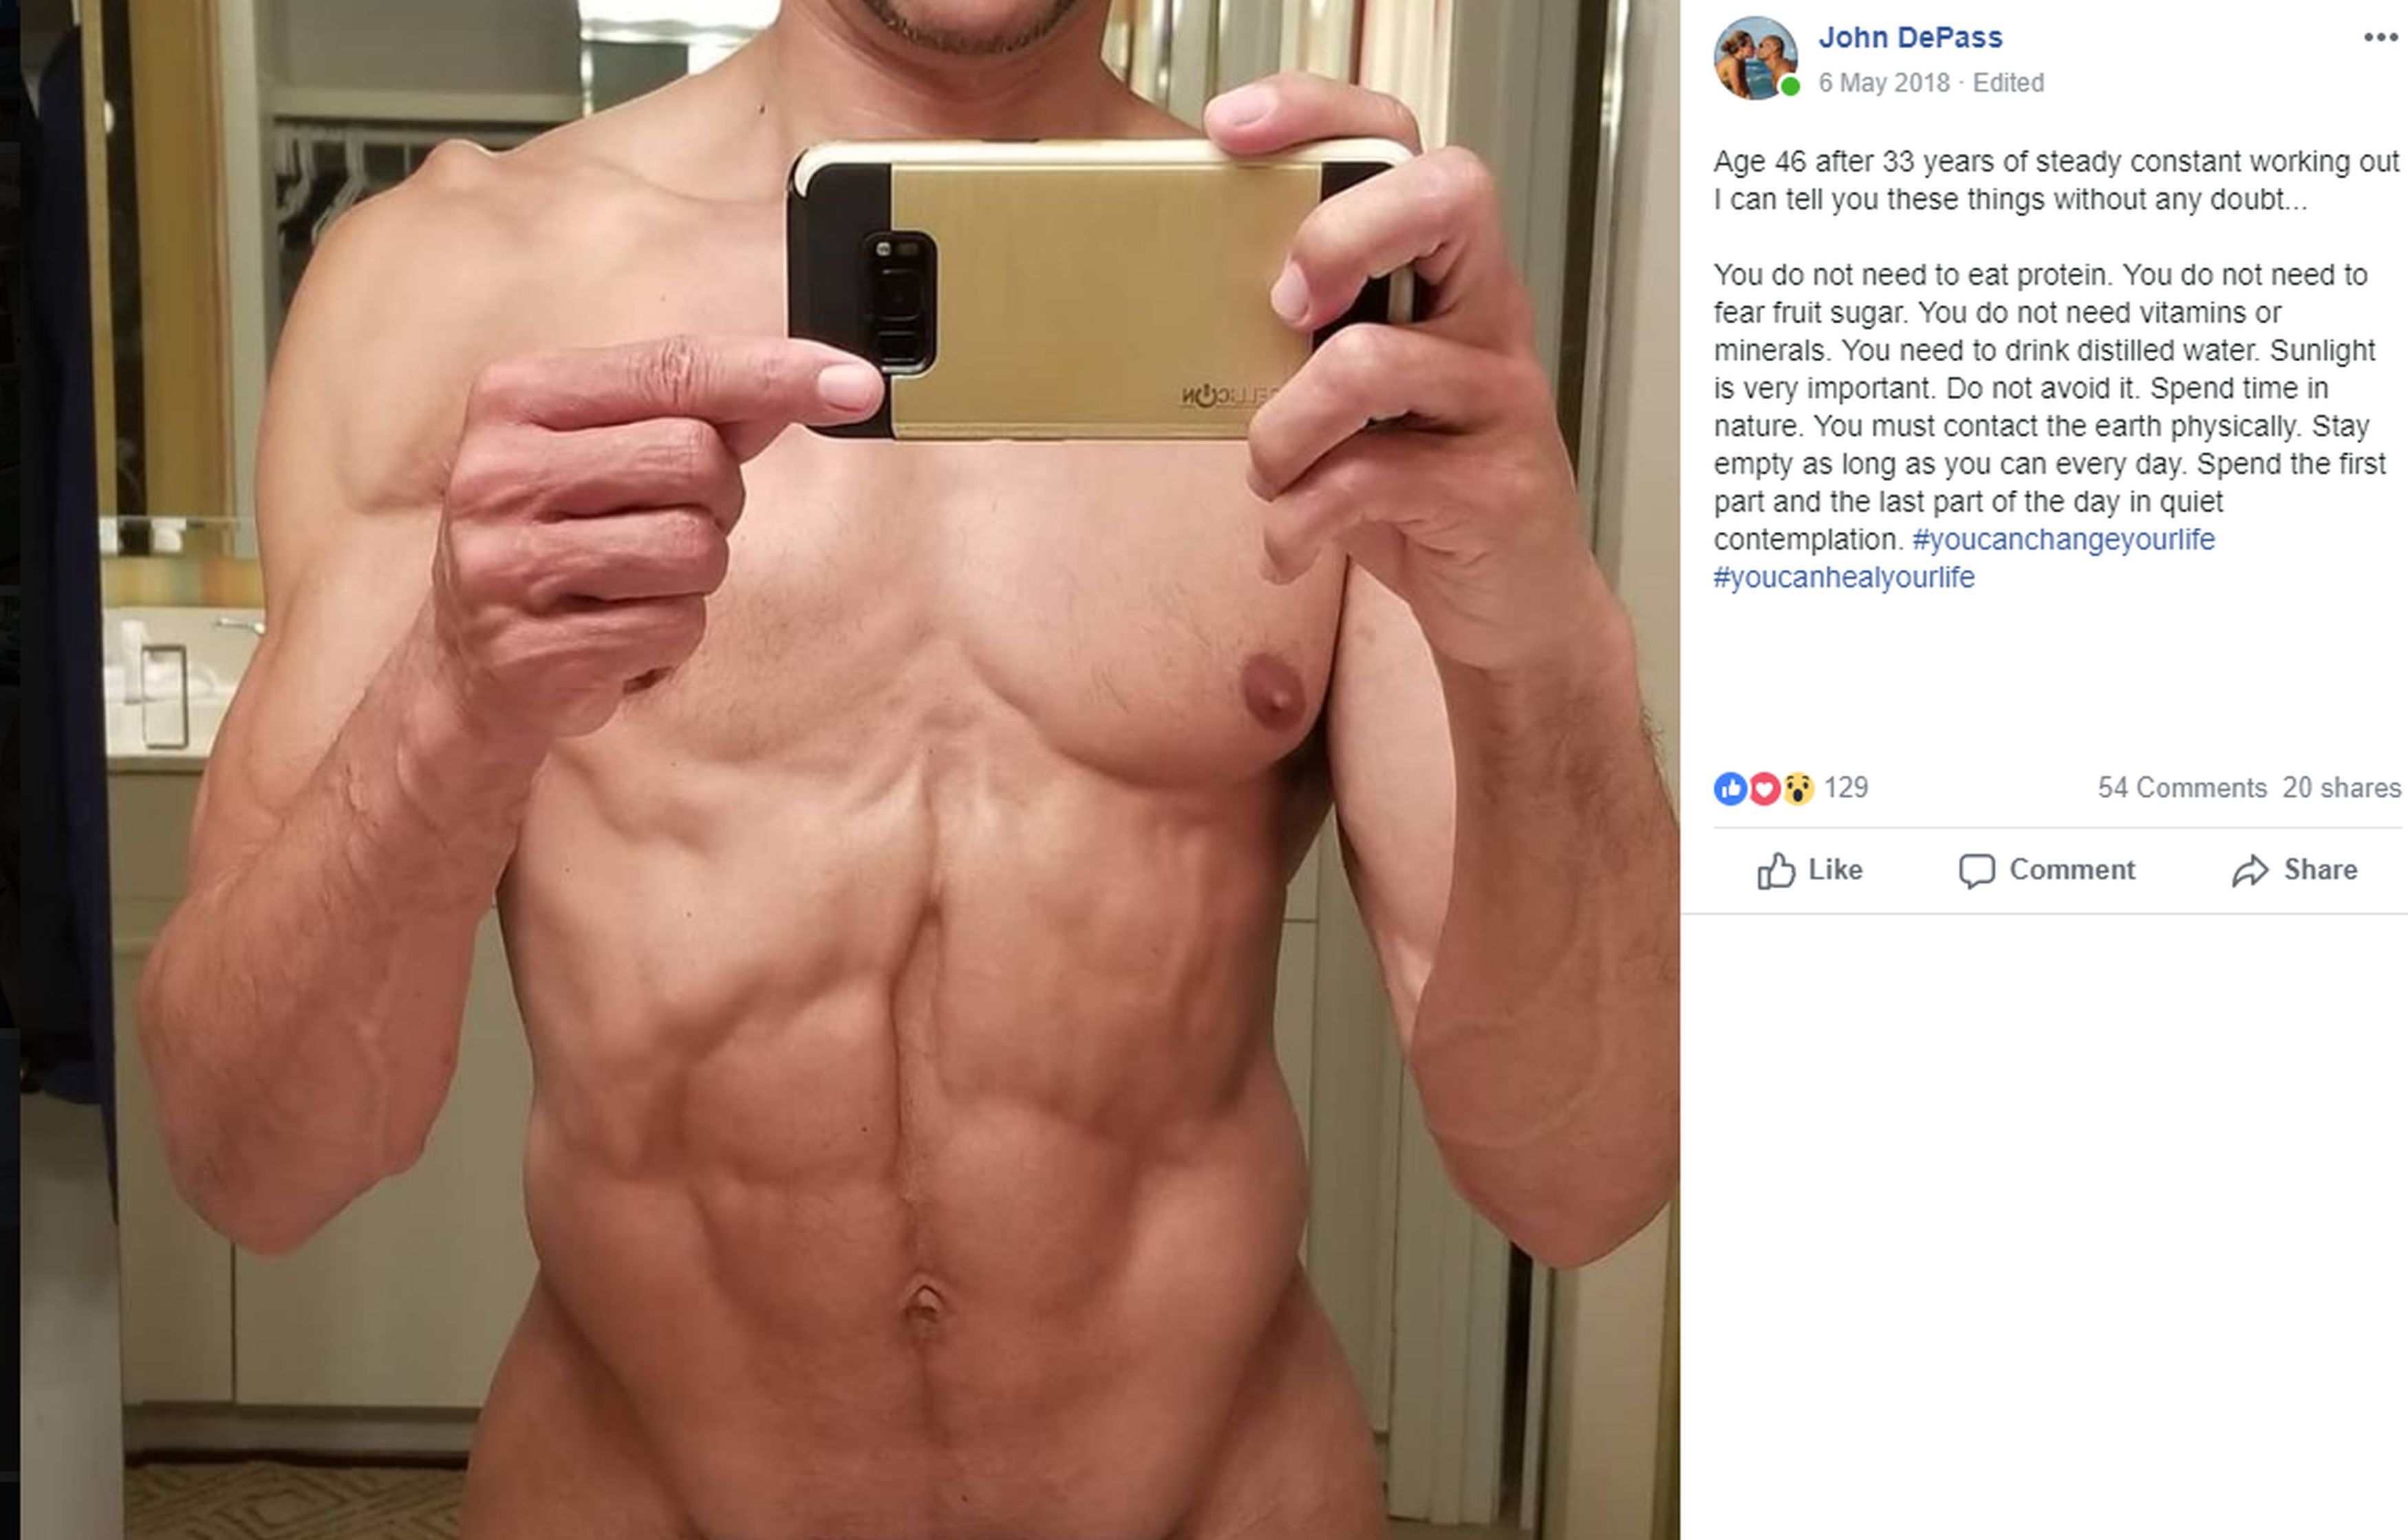 John's Facebook post claims that humans don't need protein and vitamins. Credit: Kennedy News and Media